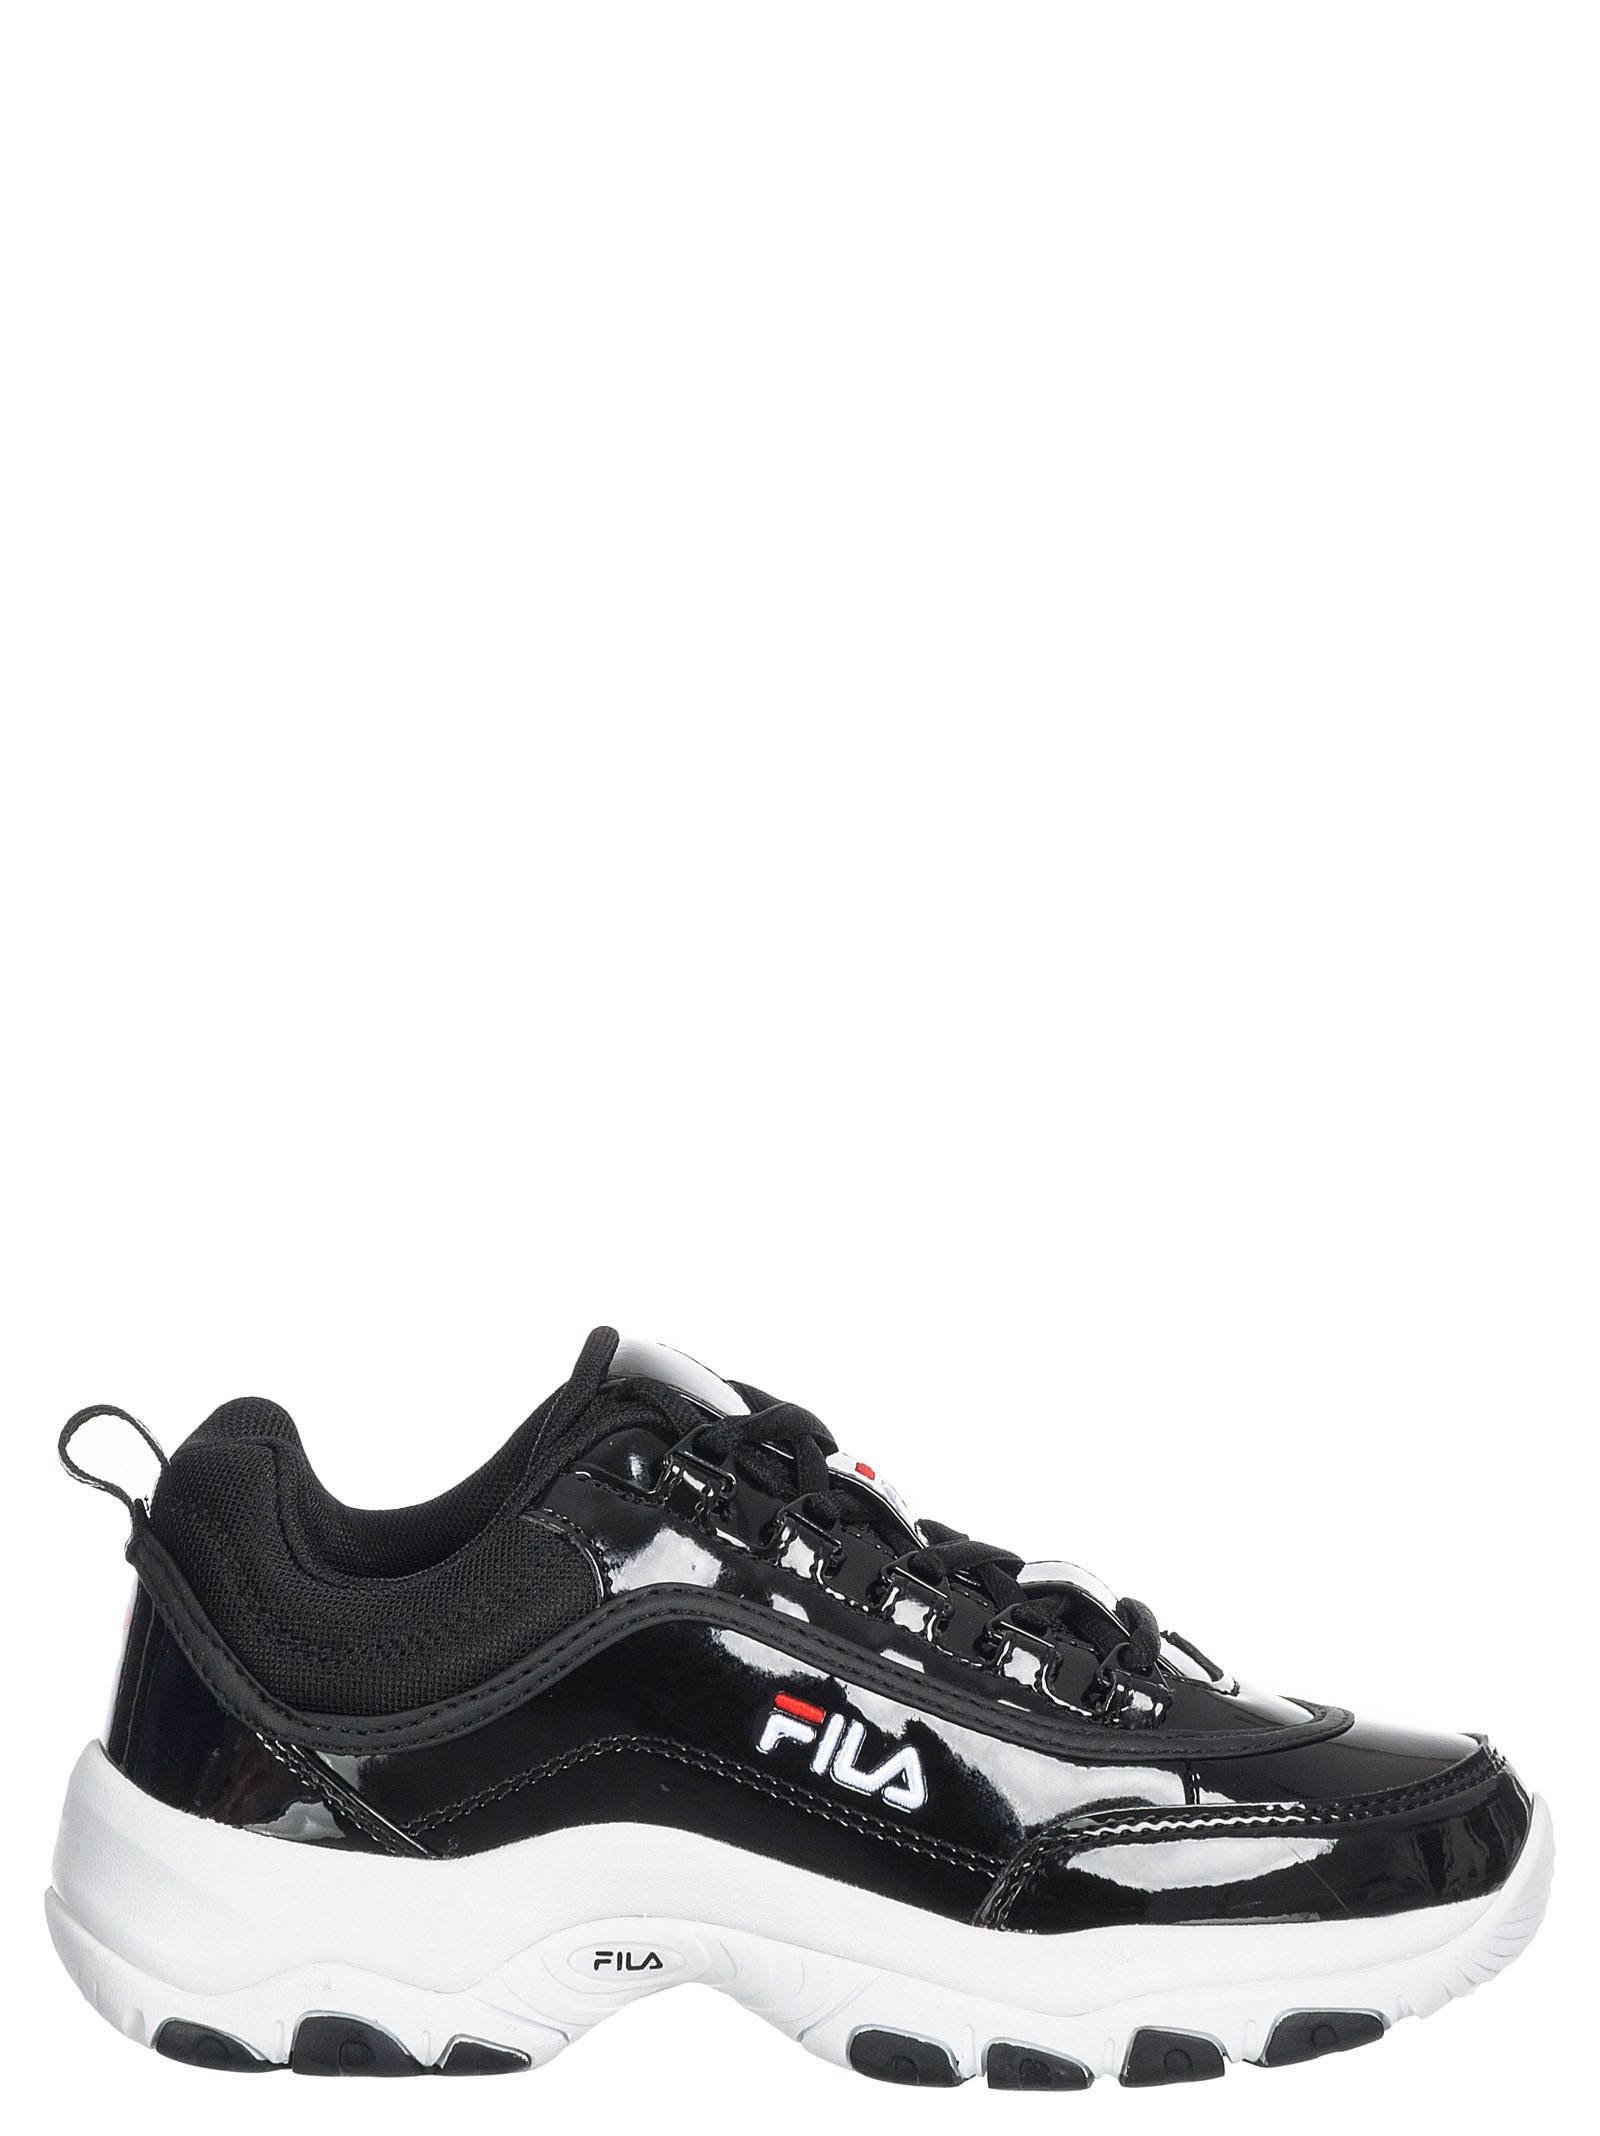 Fila Leather Sneakers